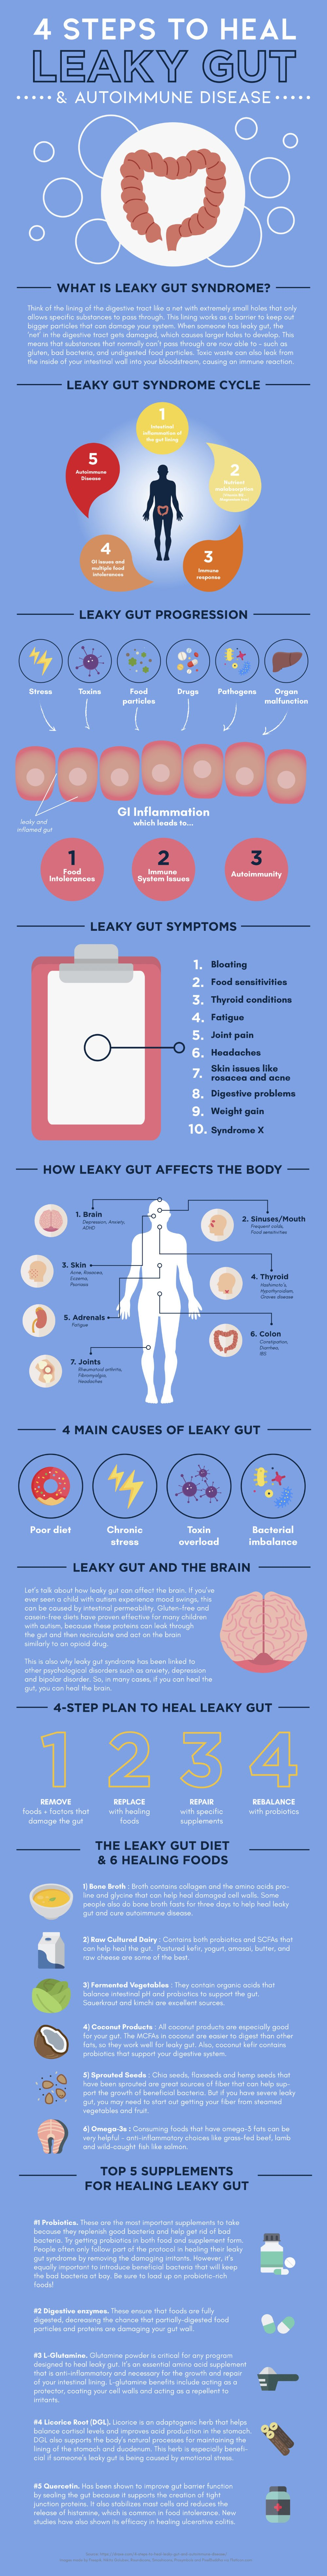 infographic on leaky gut syndrome